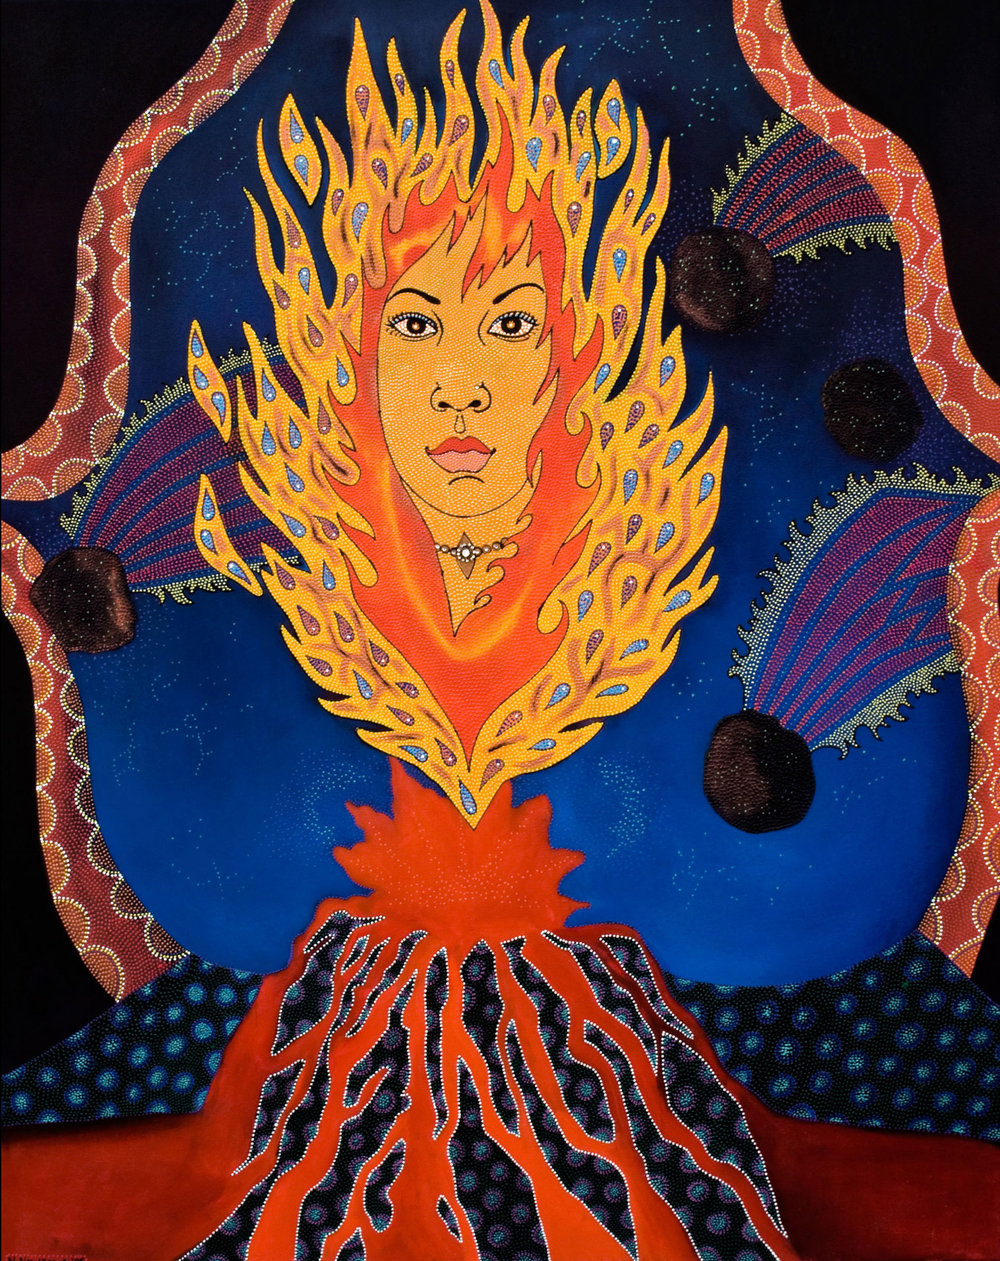 "Pu'u'O'o, 2006 Oil, acrylic and jewels on canvas 61"" x 49"""